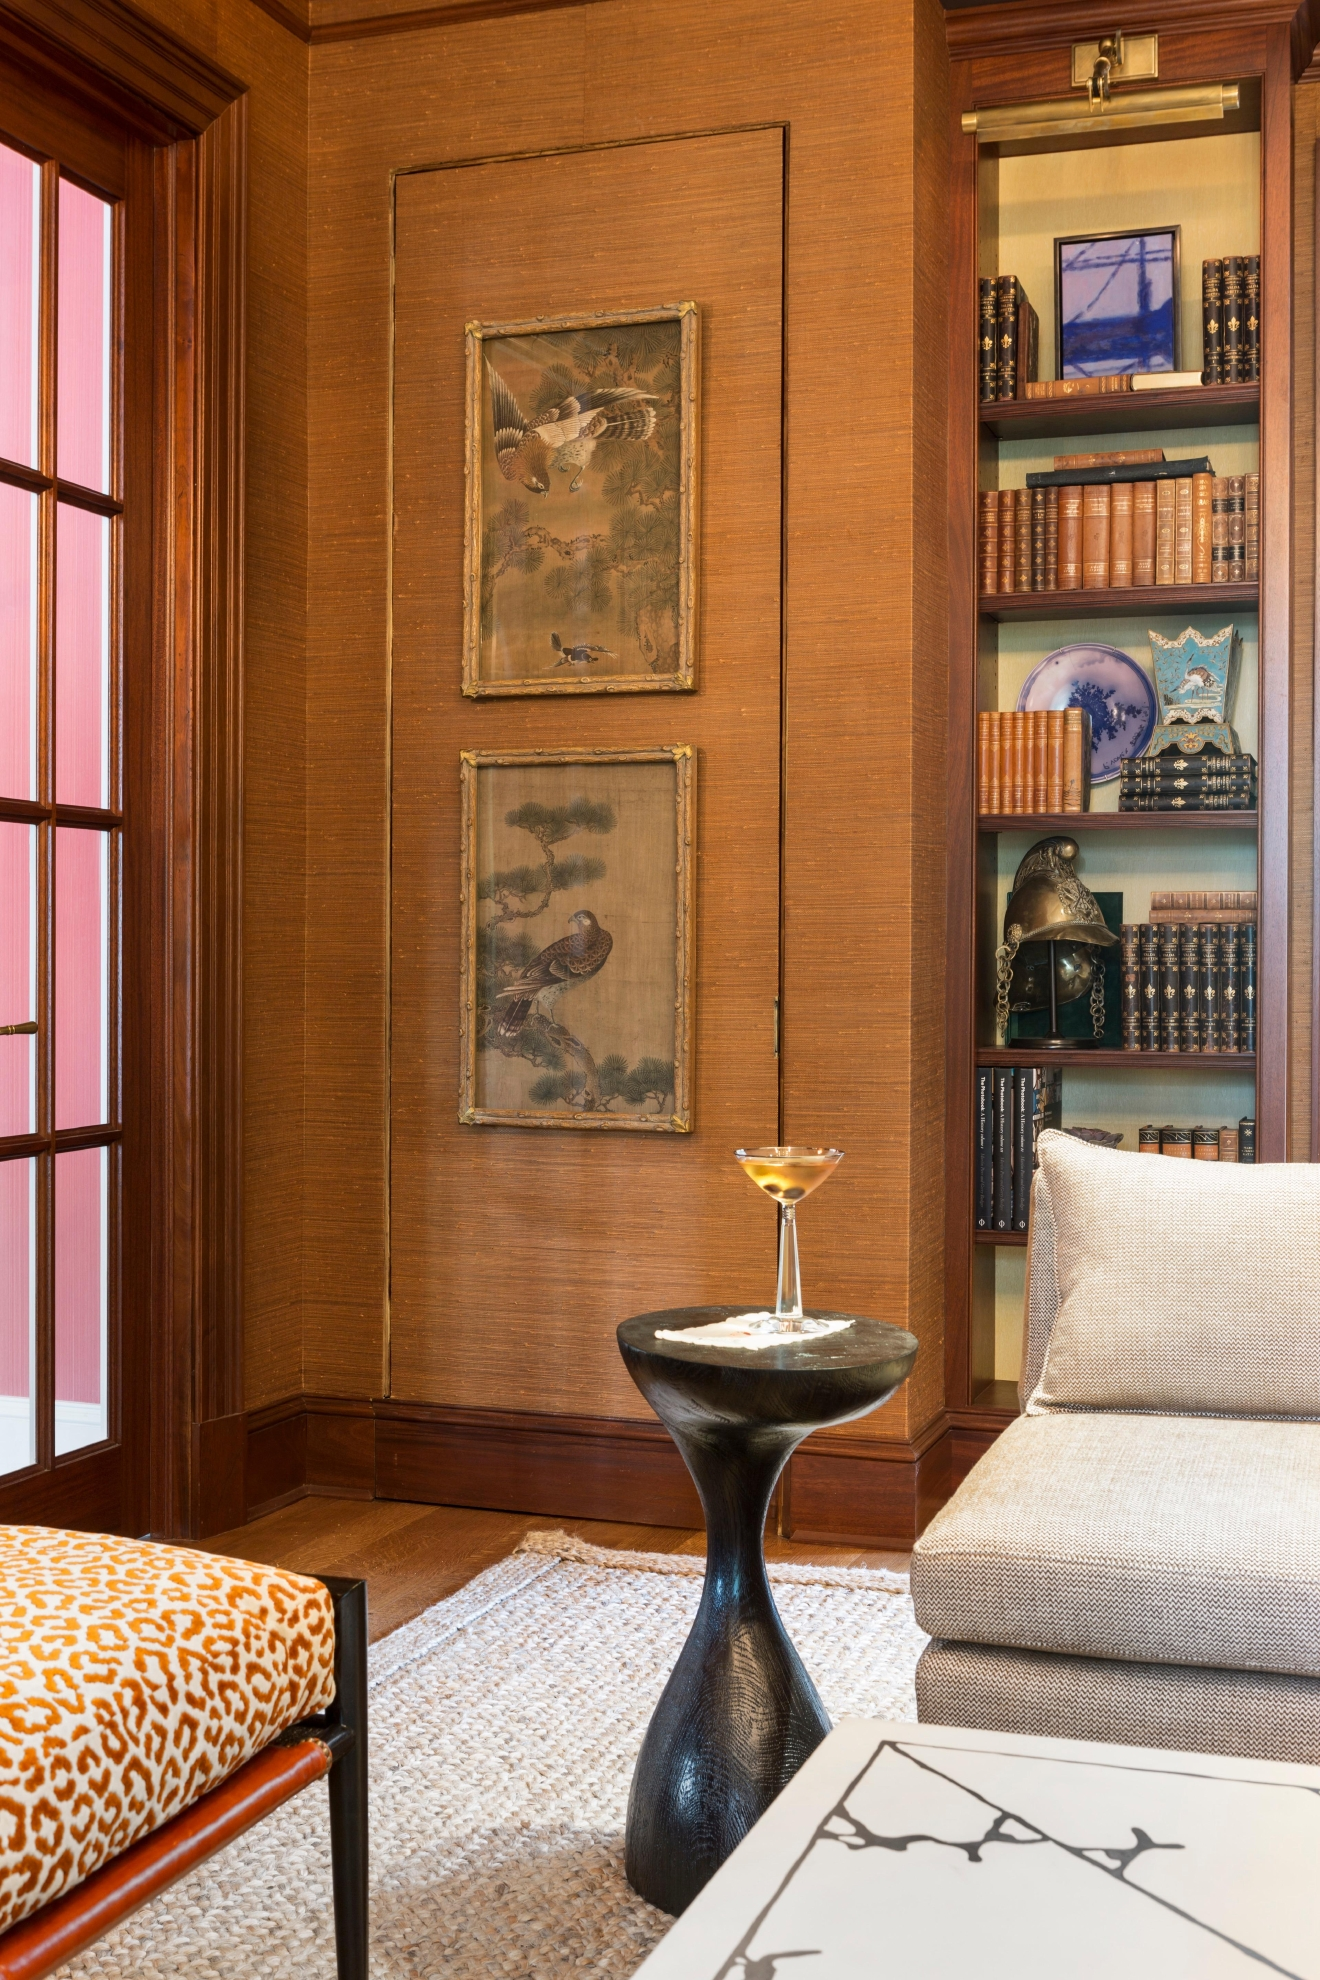 Hildreth, who is designing a whiskey bar in the closet of a home library for his addition to the DC Design House, recommends paring down your drink options to save space.  (Image: Angie Seckinger)